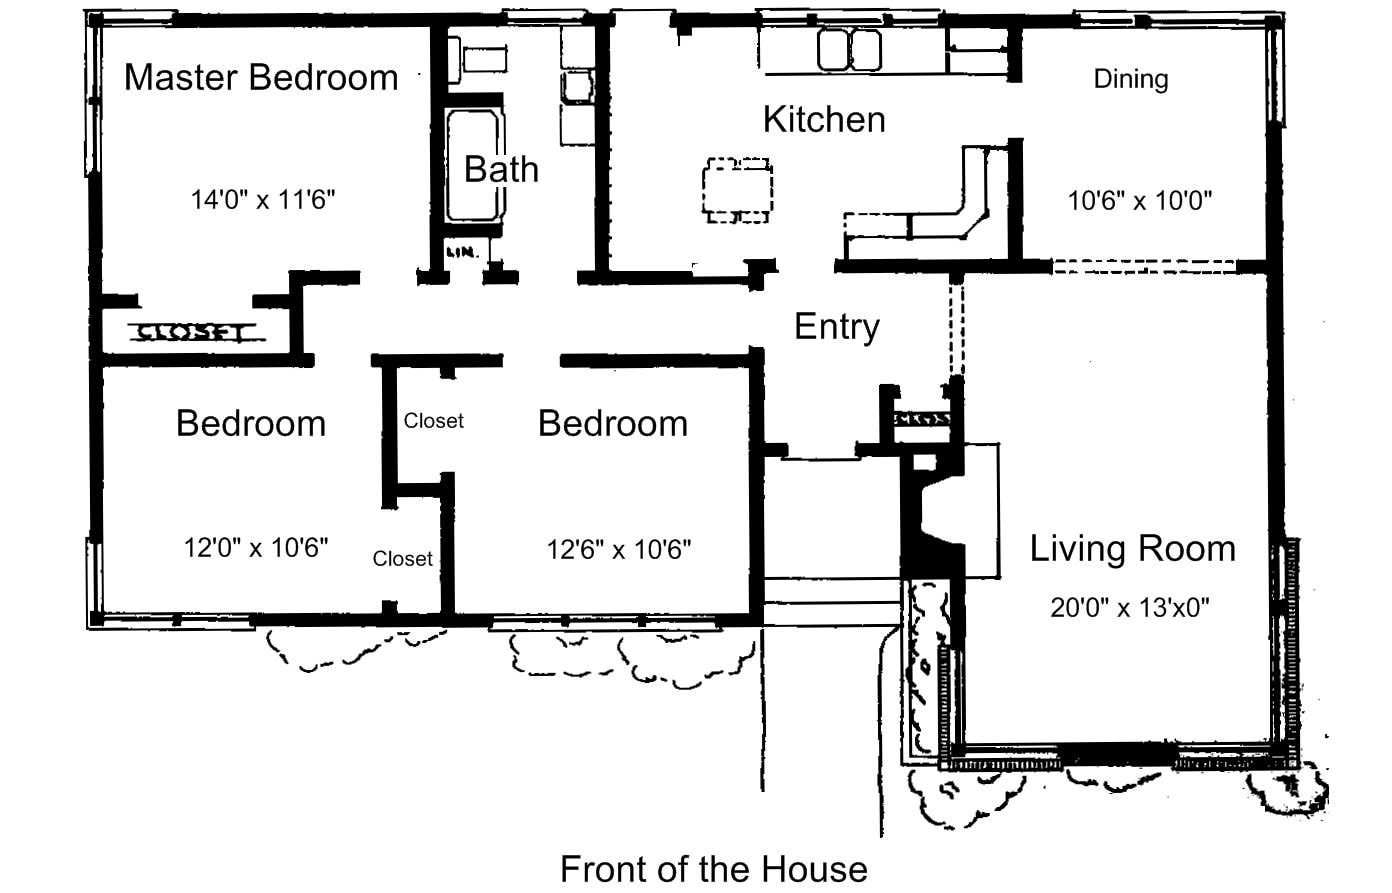 free floor plans for small houses - Houses Plans